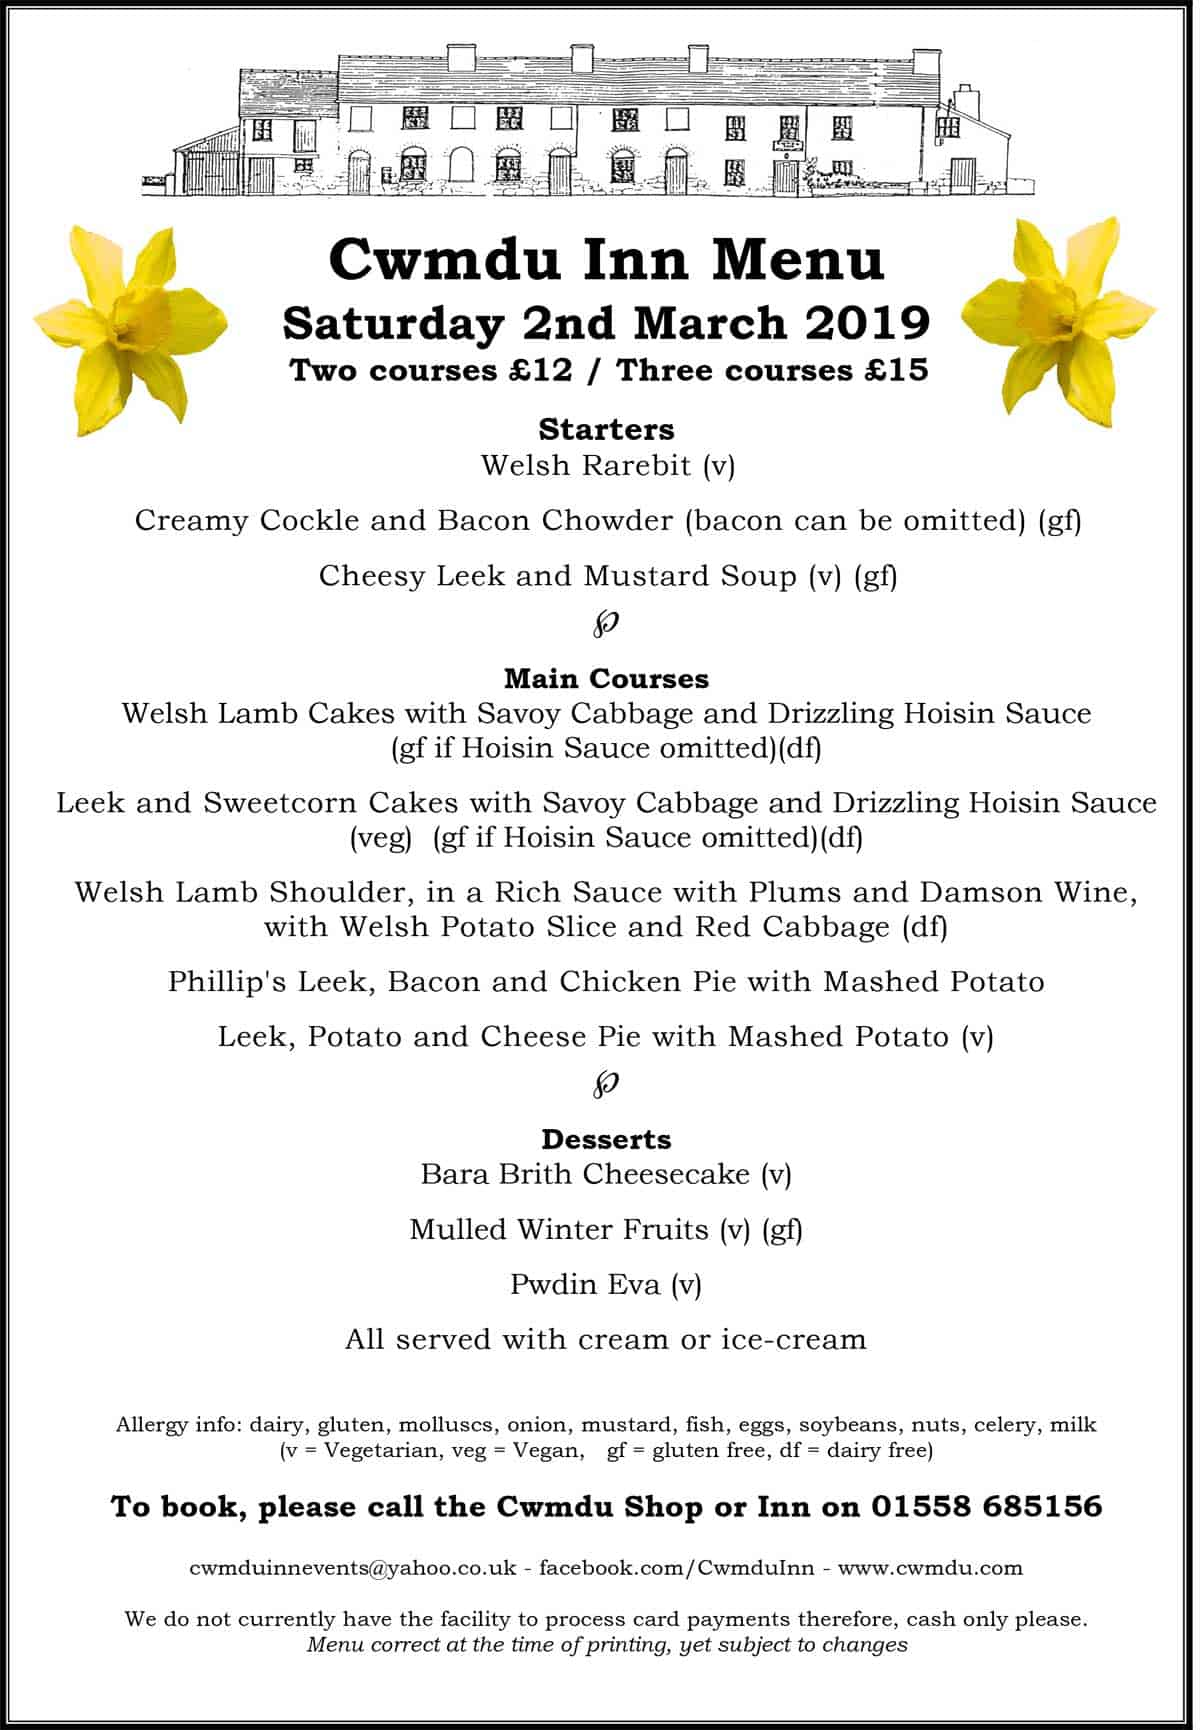 Cwmdu Inn Menu 2 March 2019